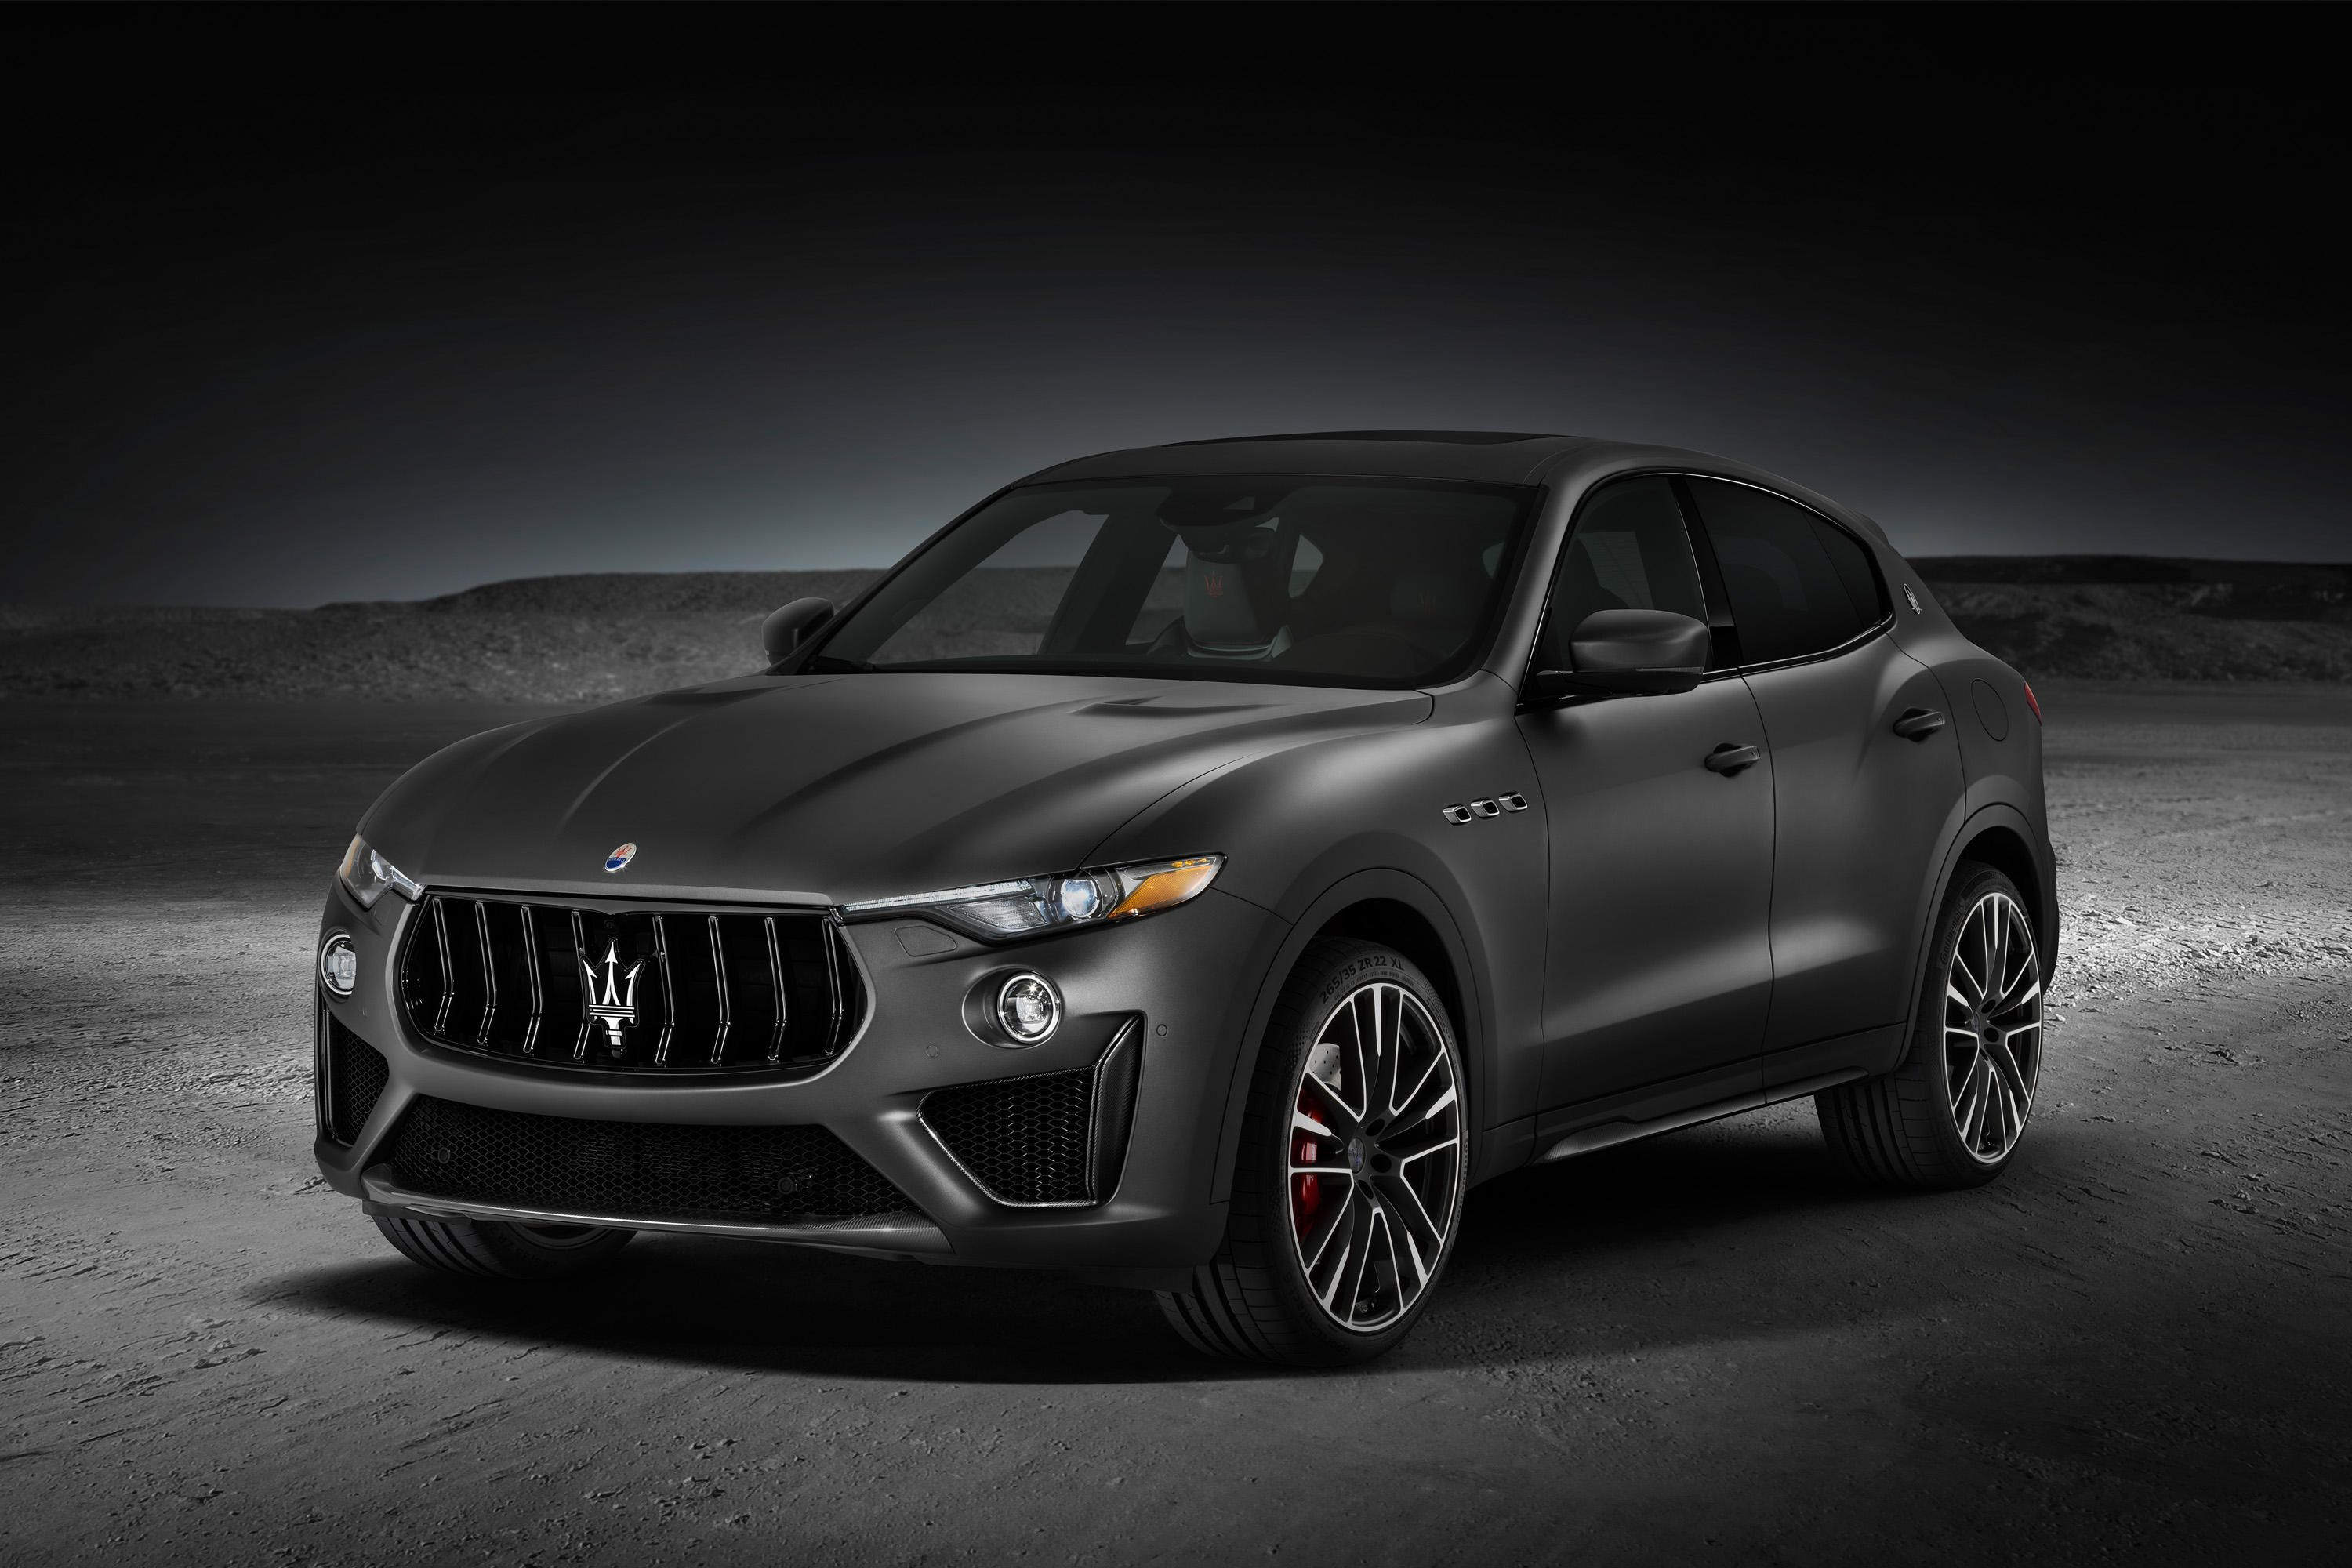 Jim Butler Maserati Blog Tubular Body Guard Frame Honda Beat Street When It Comes To Suvs Every Auto Manufacturer Can Agree That Some Of The Now Blurred Lines Are Providing Entire New Niches As Exciting